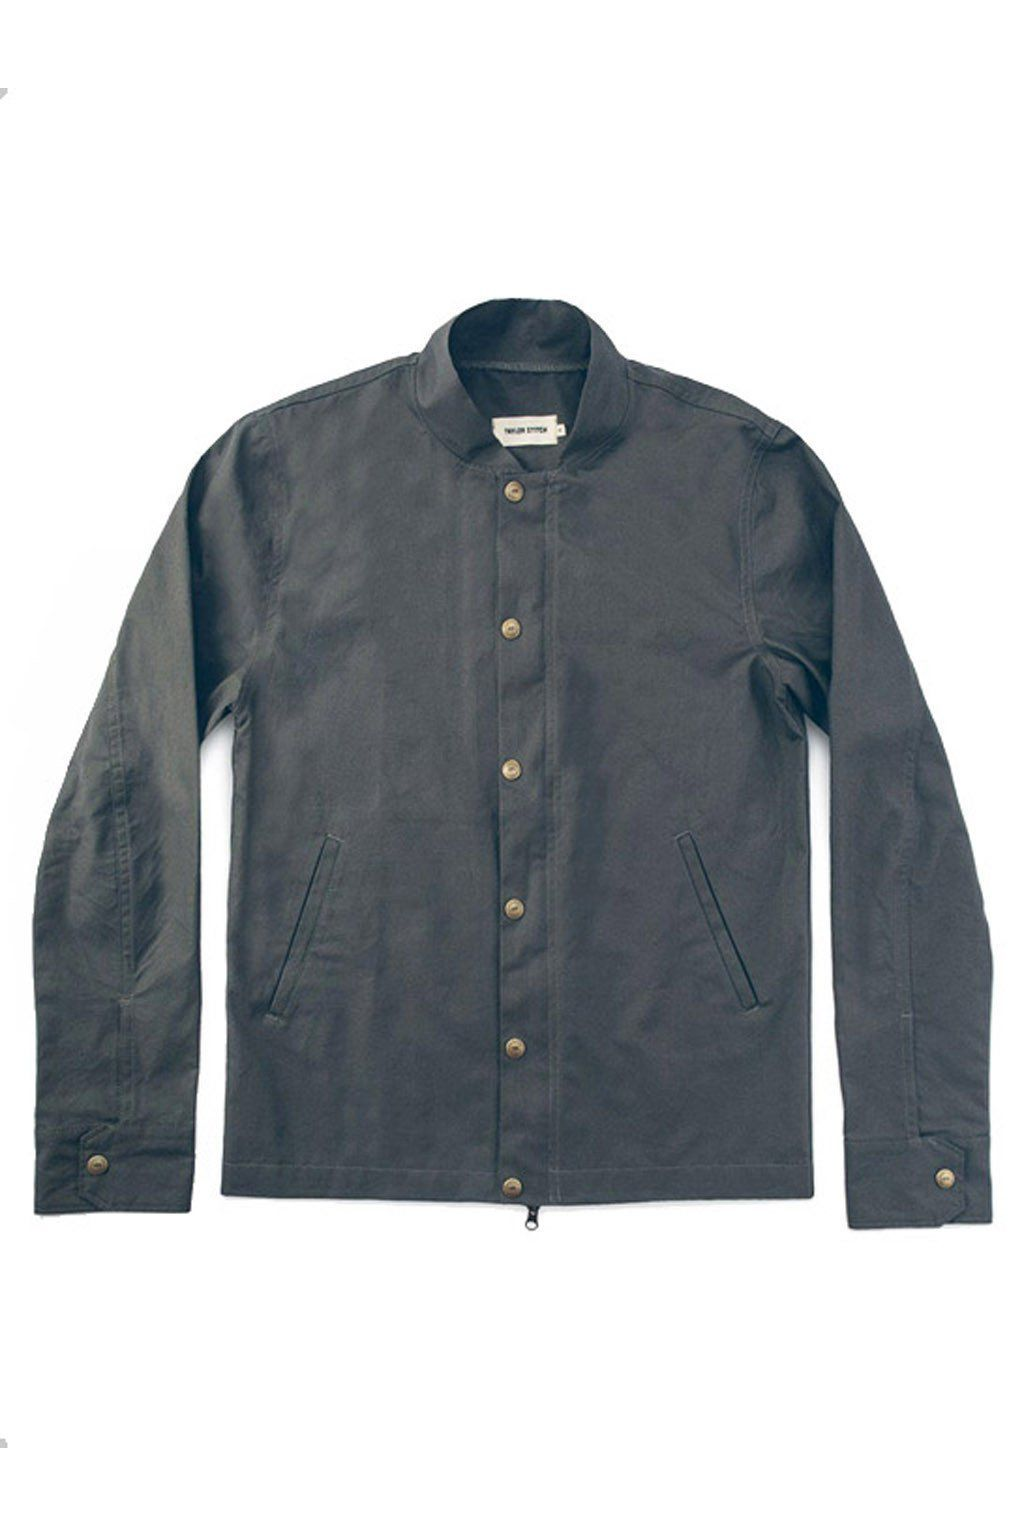 4794b18db TAYLOR STITCH Bomber Jacket, Charcoal | Products | Taylor stitch ...